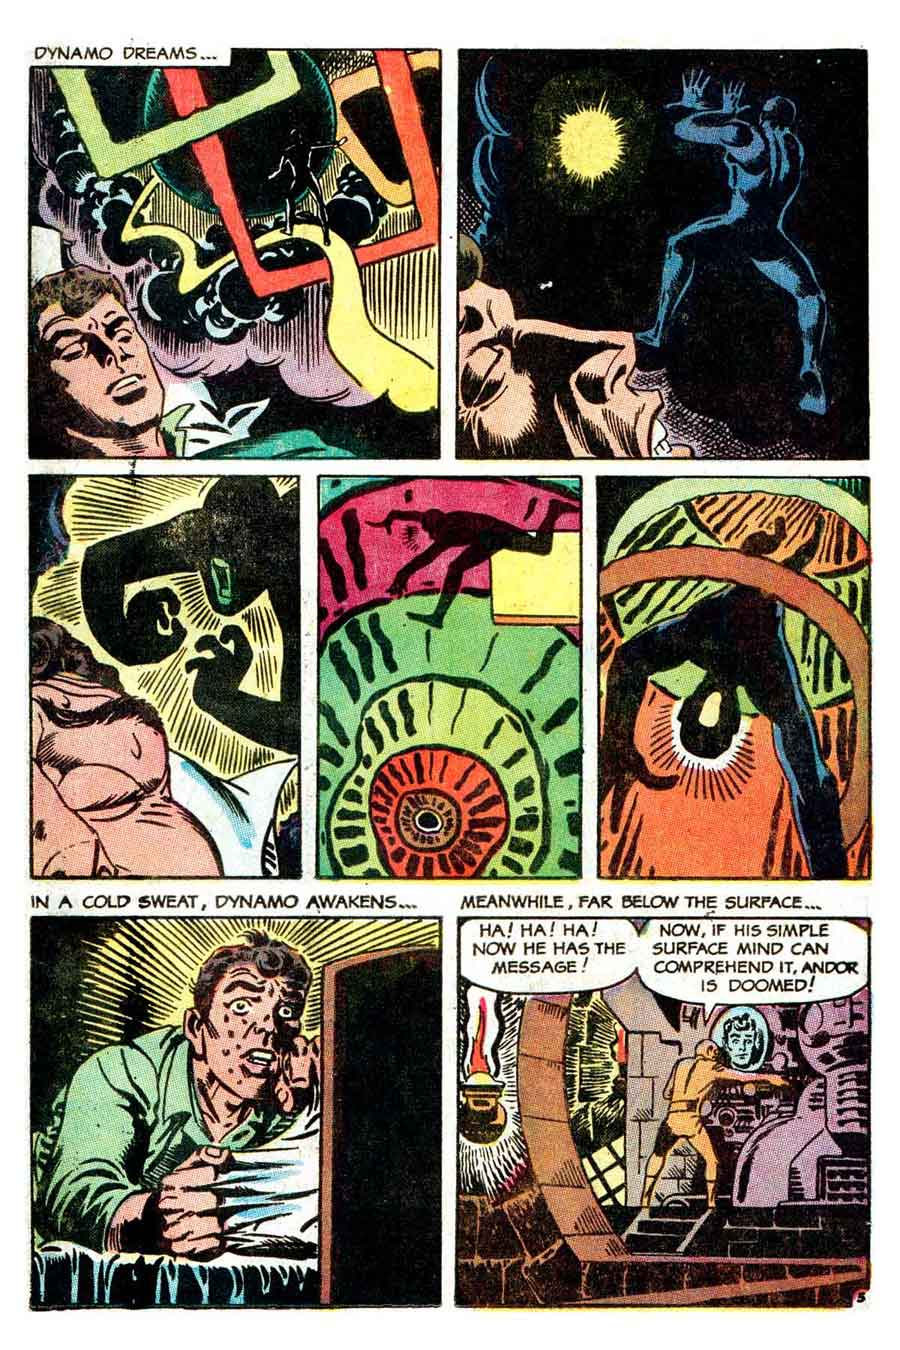 Thunder Agents v1 #16 tower silver age 1960s comic book page art by Steve Ditko